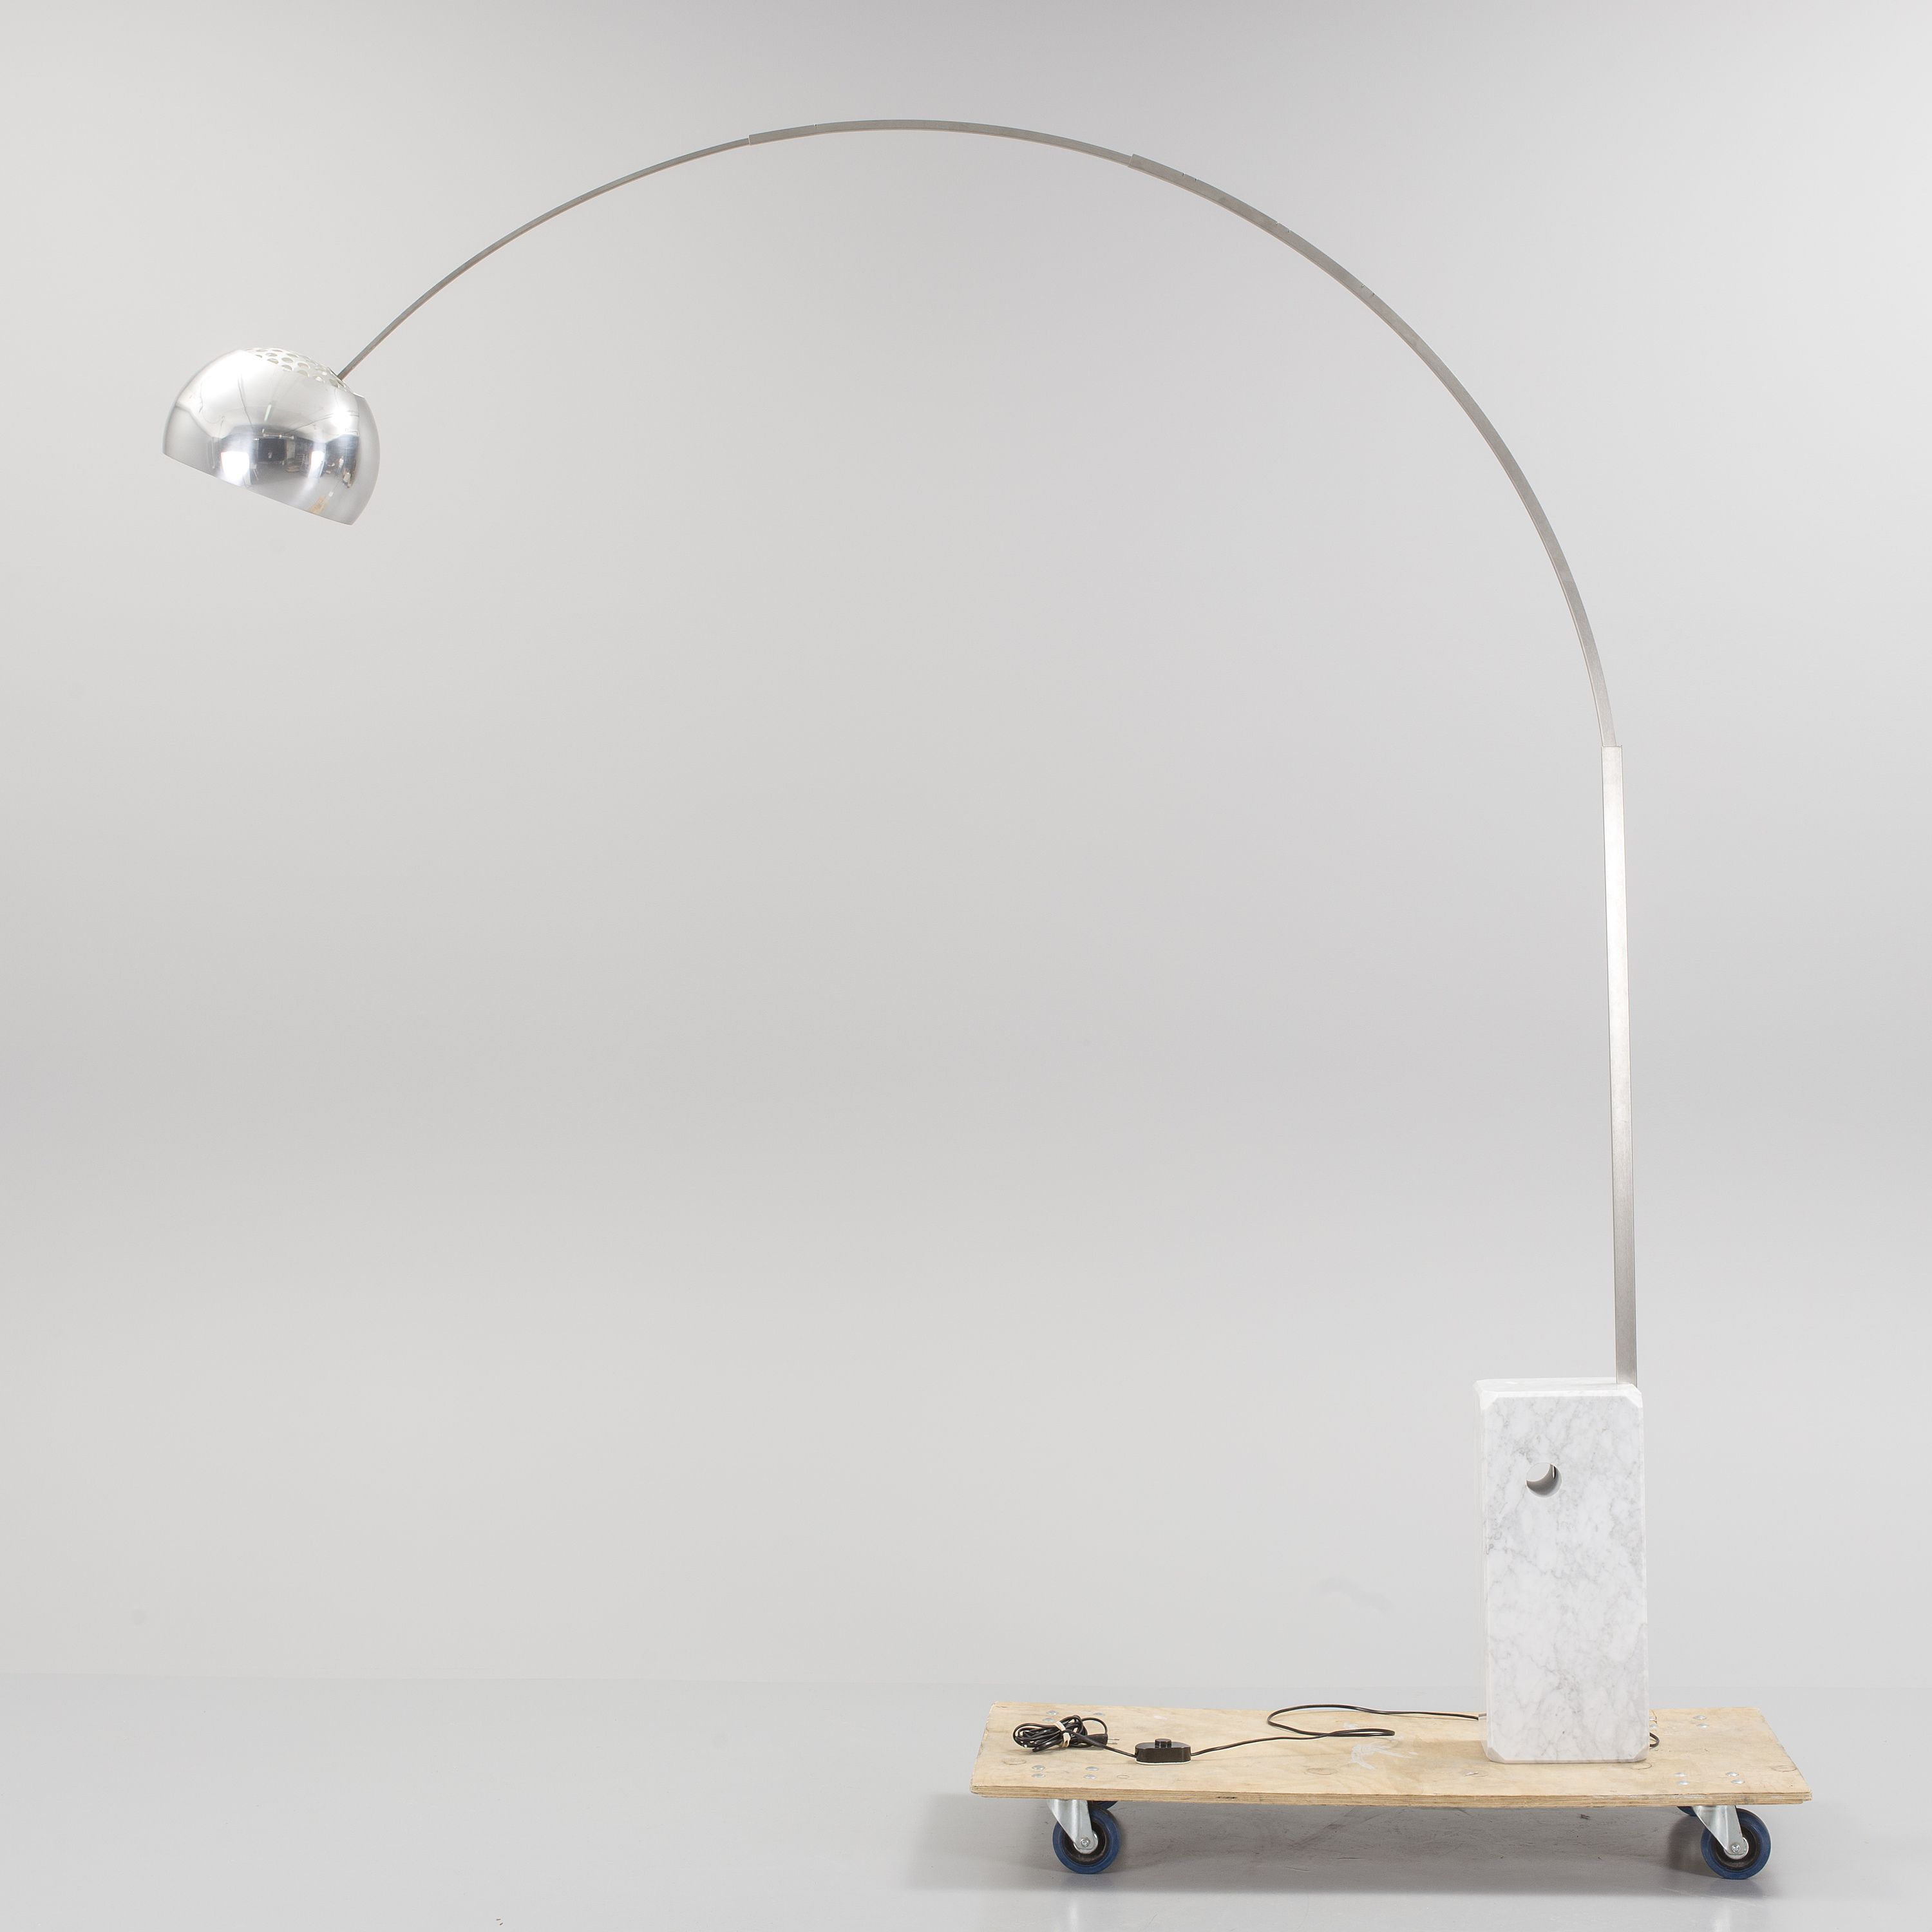 Achille castiglioni an arco floor lamp by flos italy bukowskis 10106723 bukobject mozeypictures Choice Image